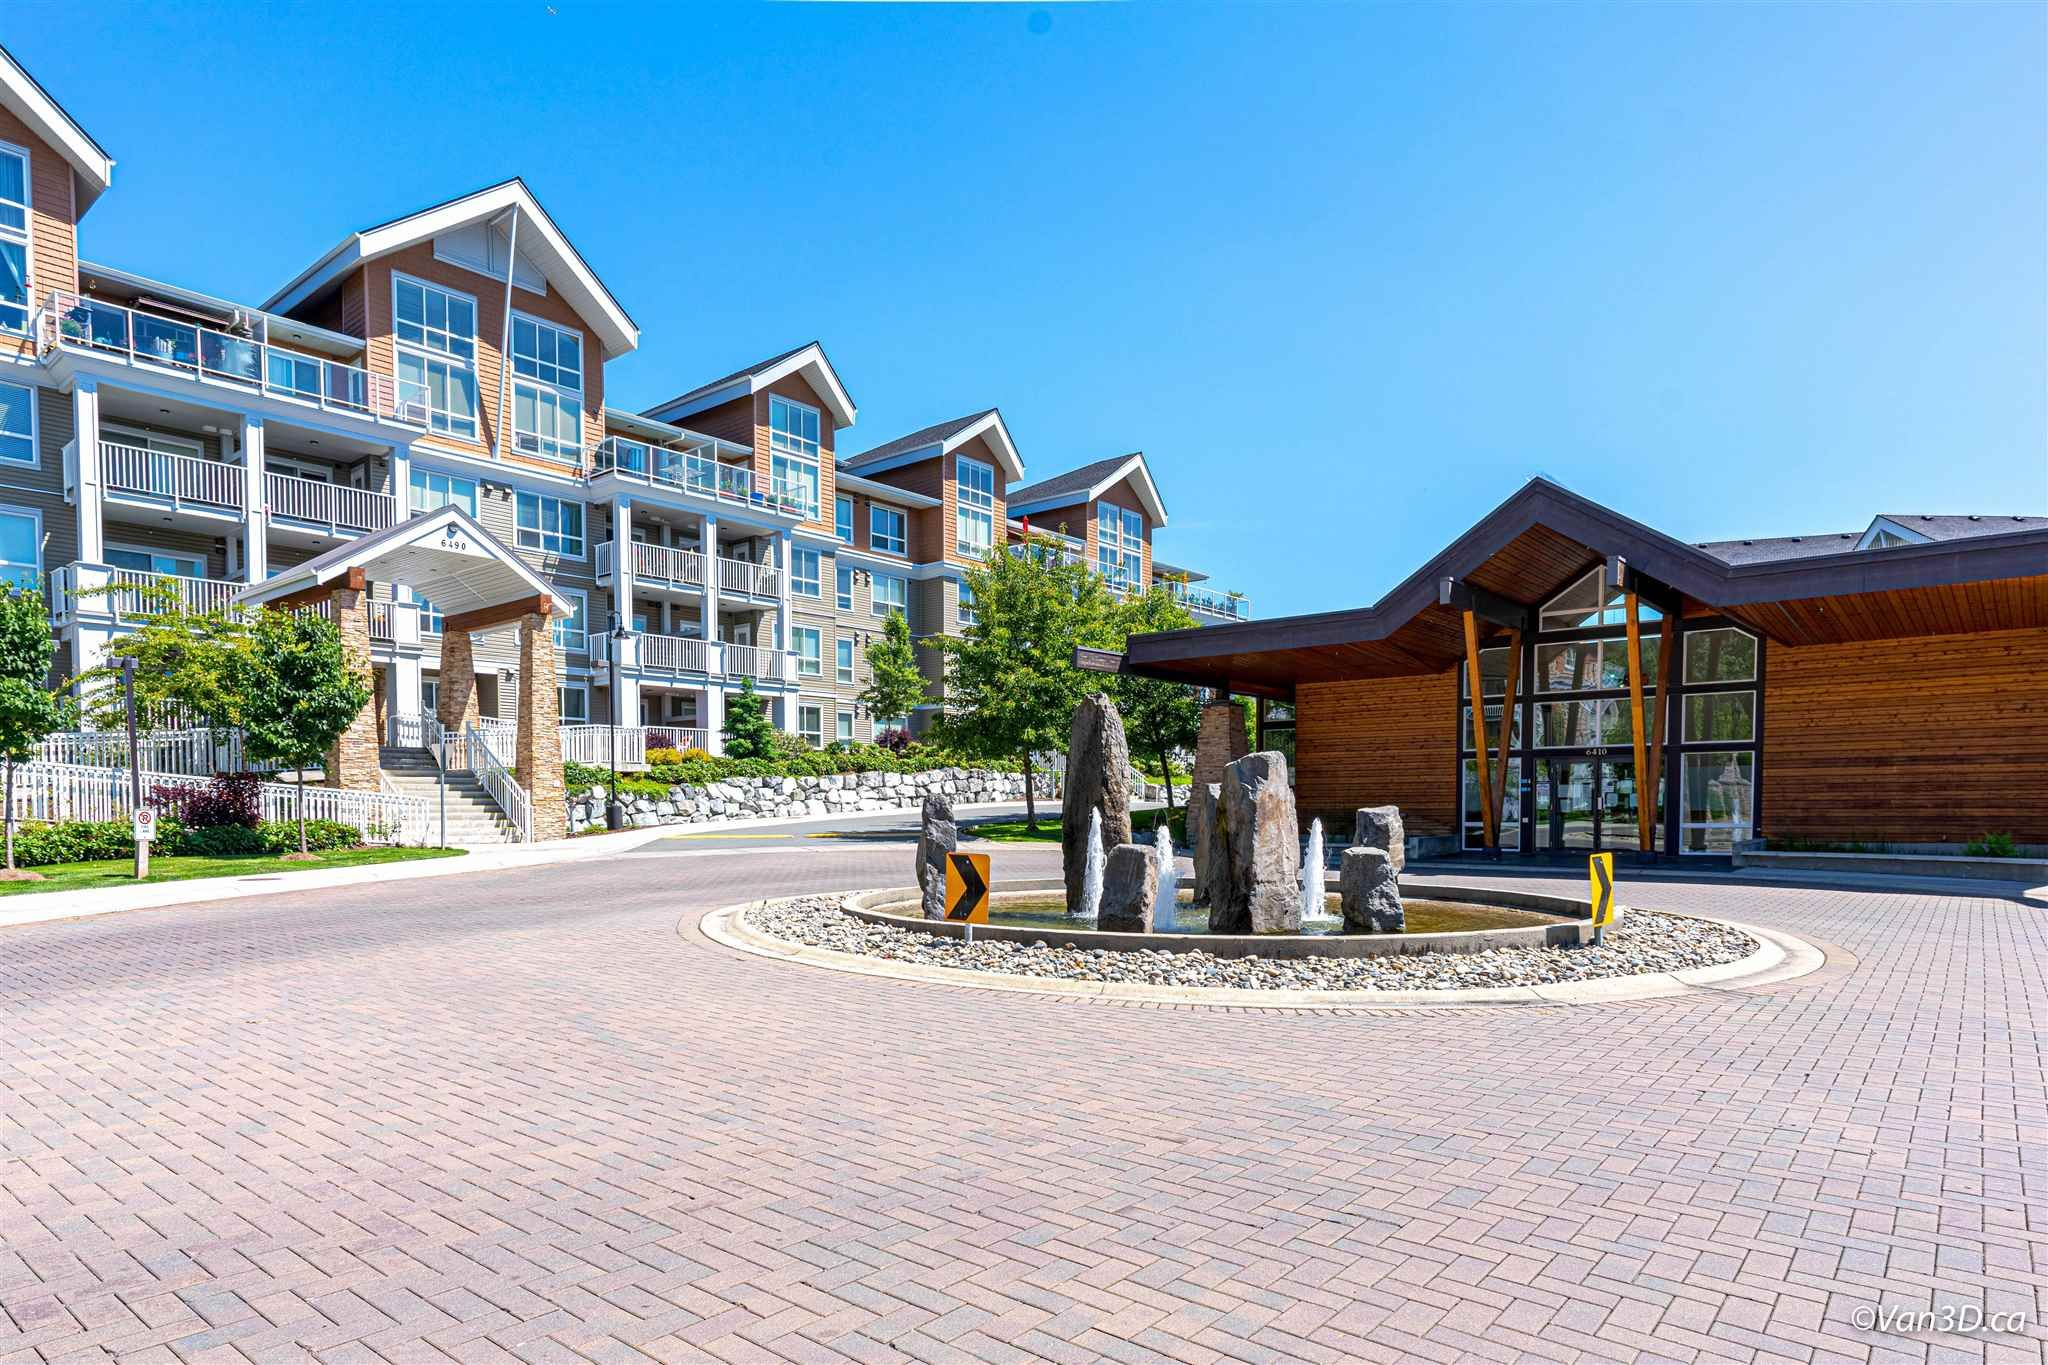 """Main Photo: 101 6490 194 Street in Surrey: Clayton Condo for sale in """"Waterstone"""" (Cloverdale)  : MLS®# R2601636"""